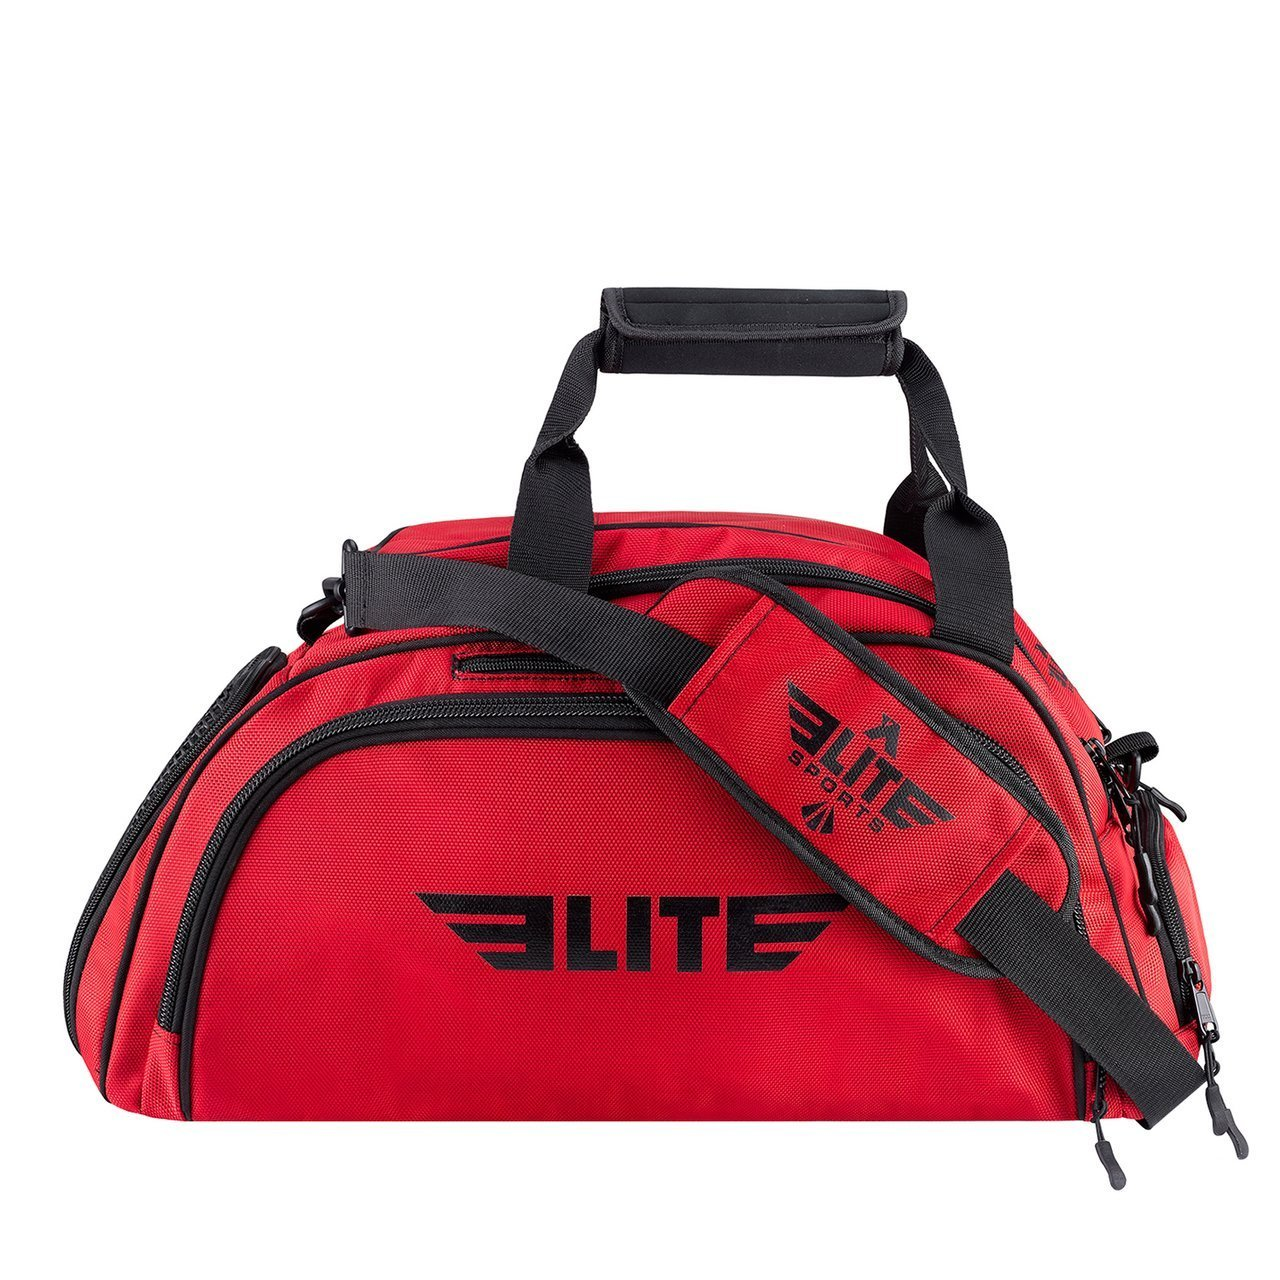 Elite Sports Warrior Series Red Medium Duffel Wrestling Gear Gym Bag & Backpack